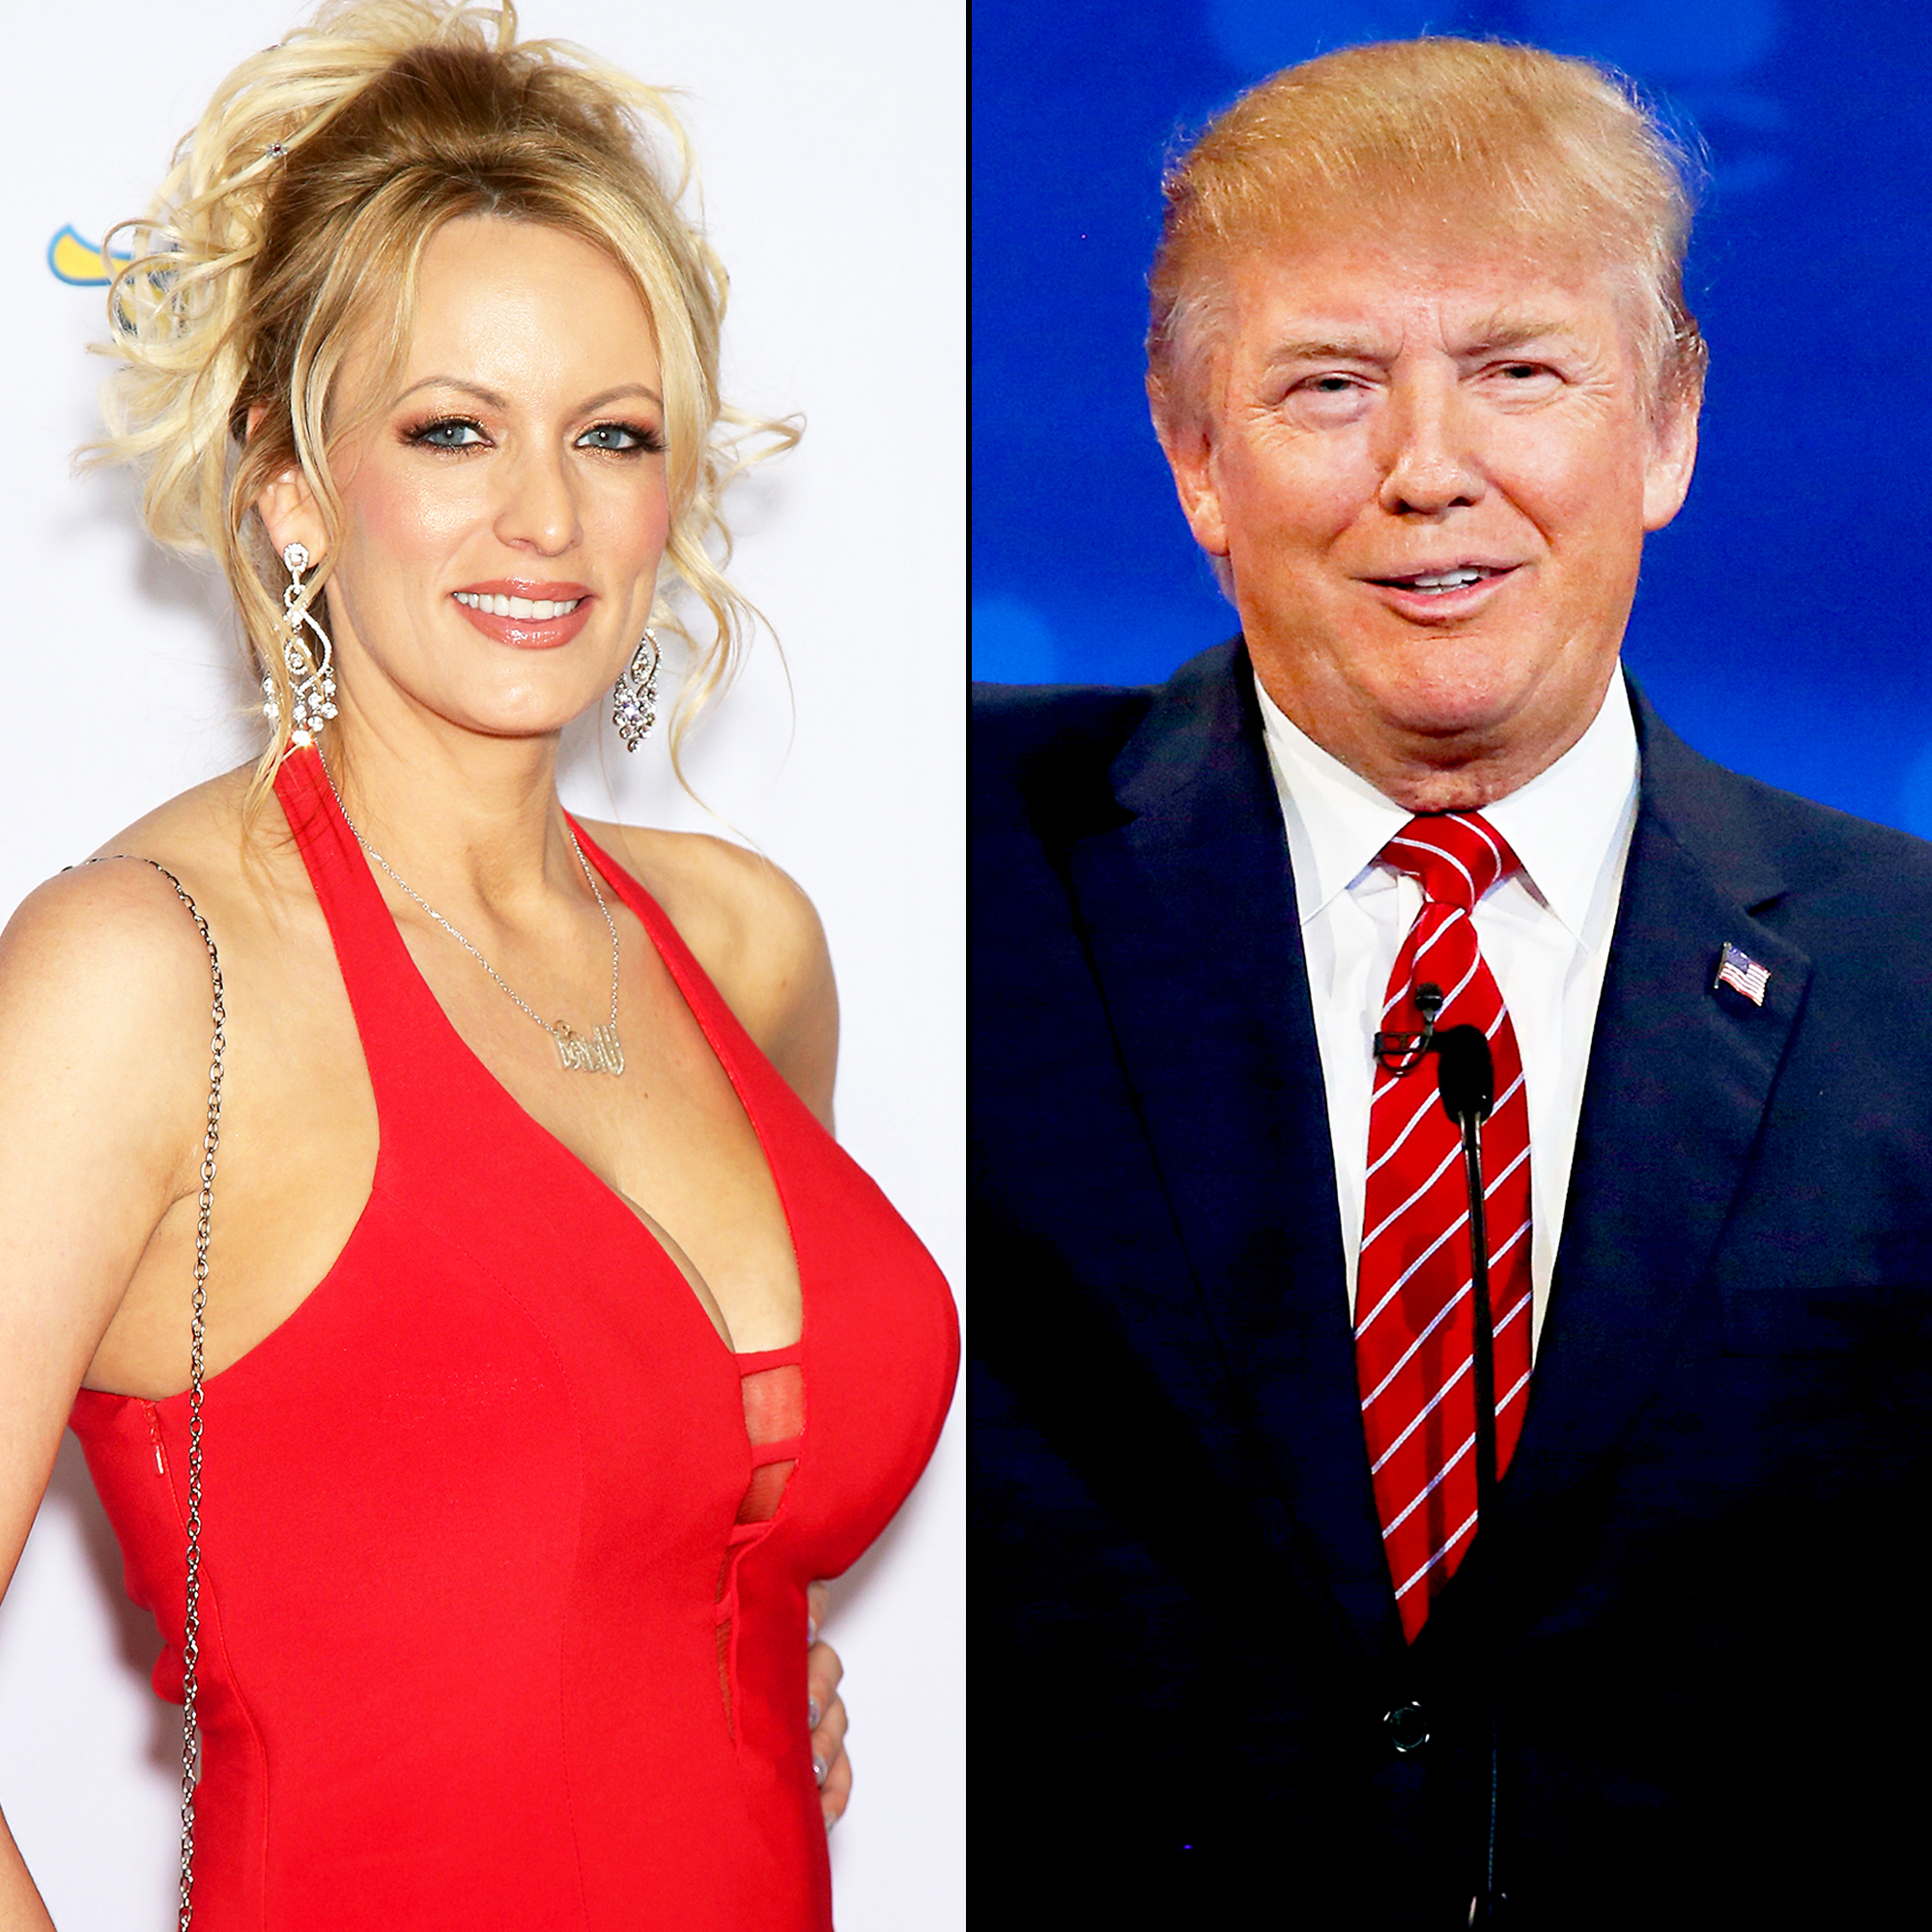 Porn actress Stormy Daniels threatened by Trump's people